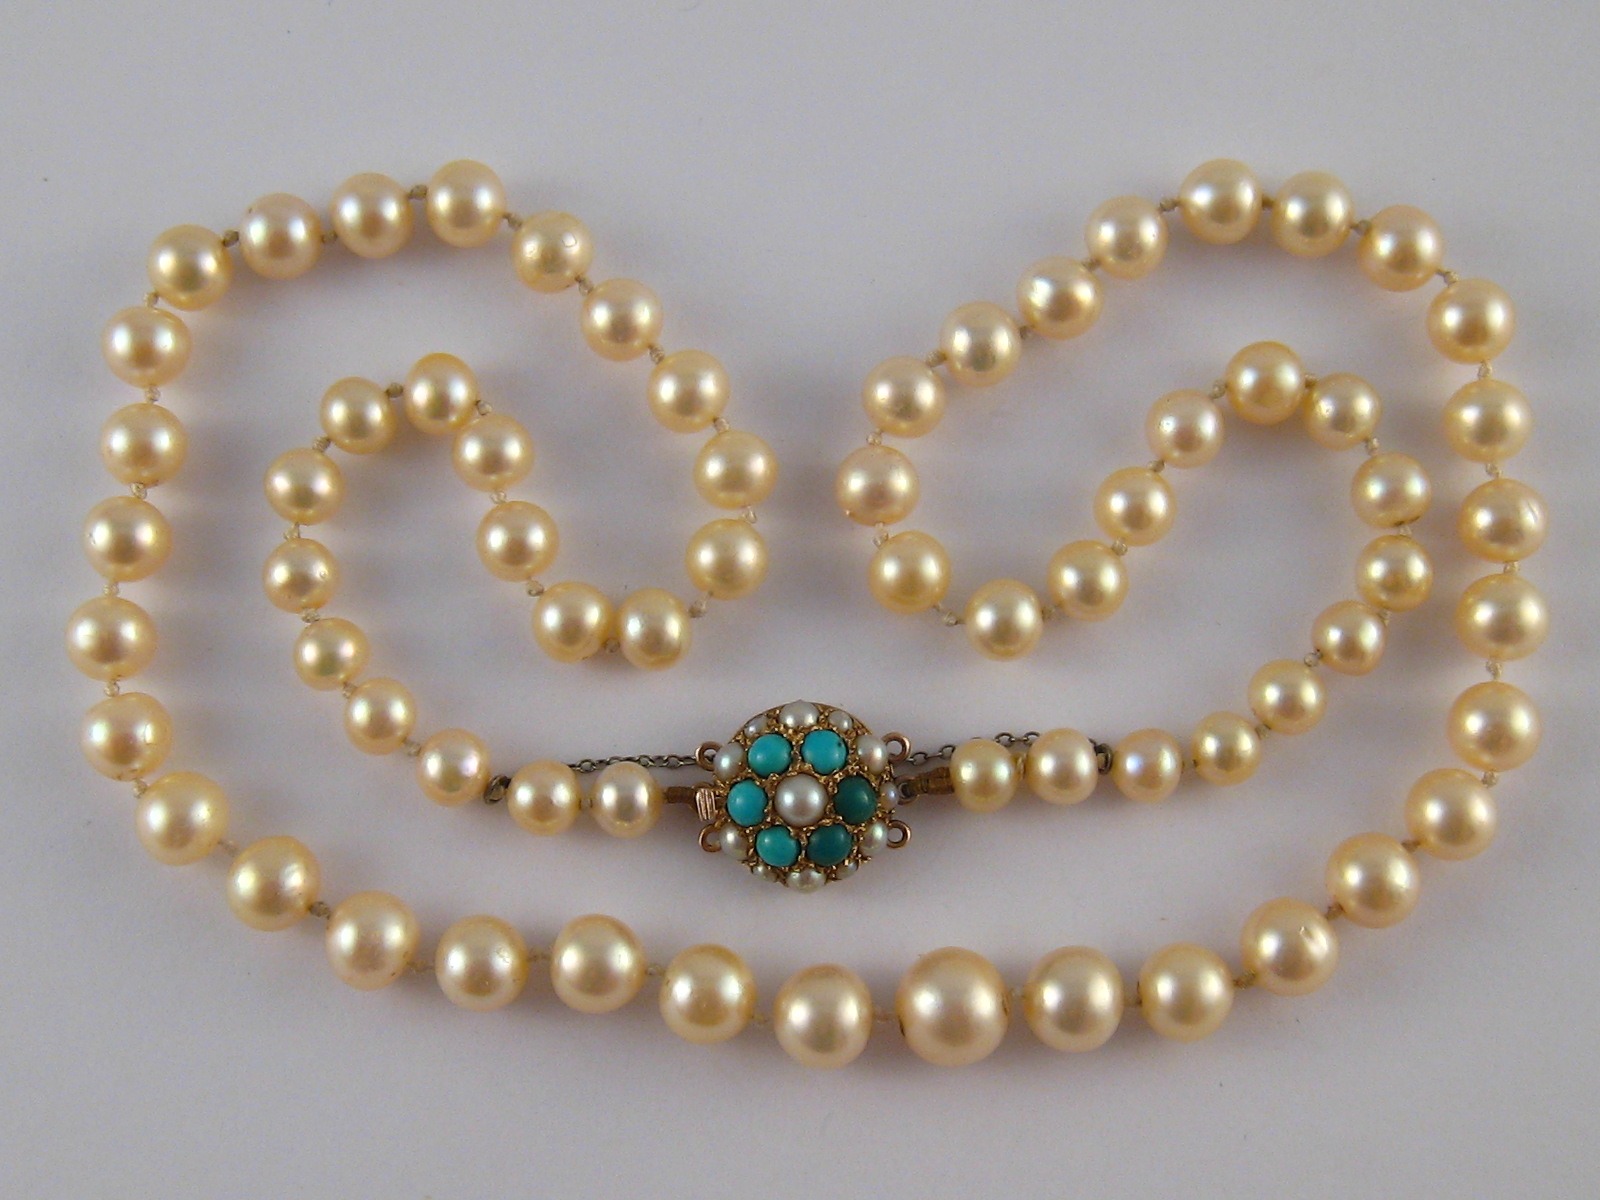 A graduated cultured pearl necklace with a yellow metal (tests 9 carat gold) turquoise and seed